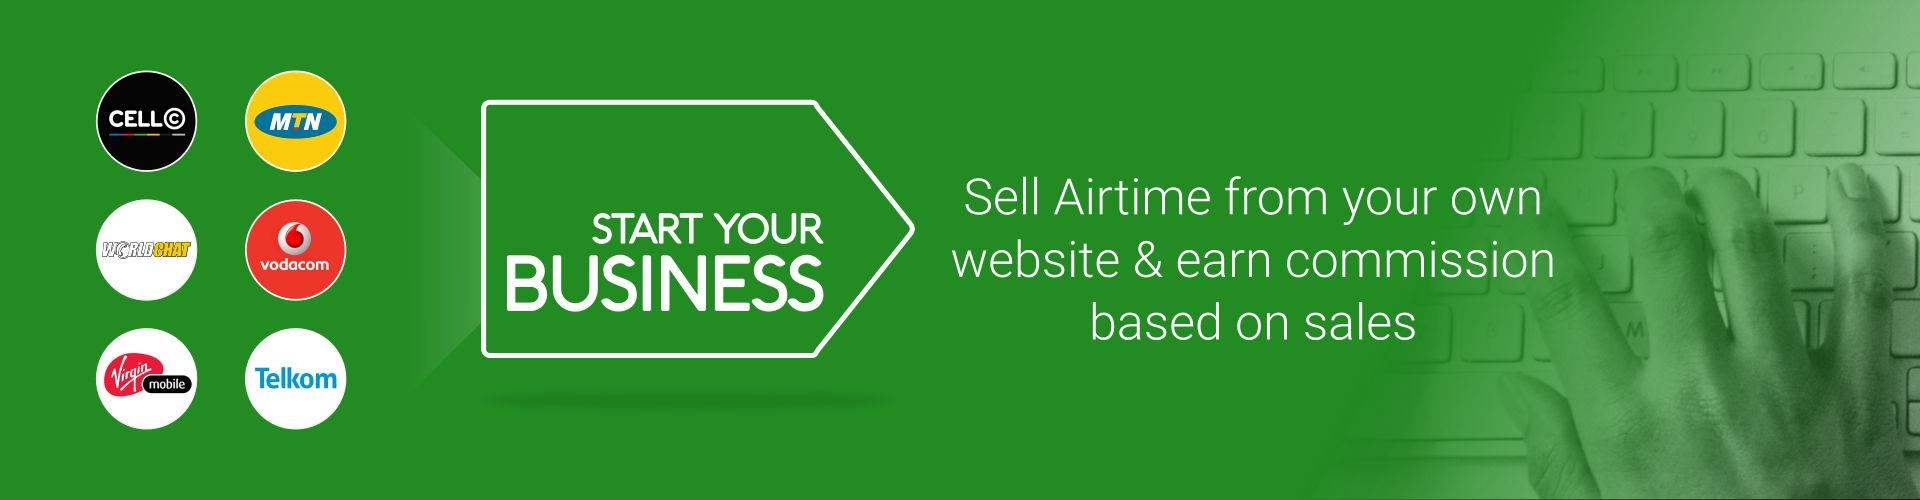 Start your own airtime business